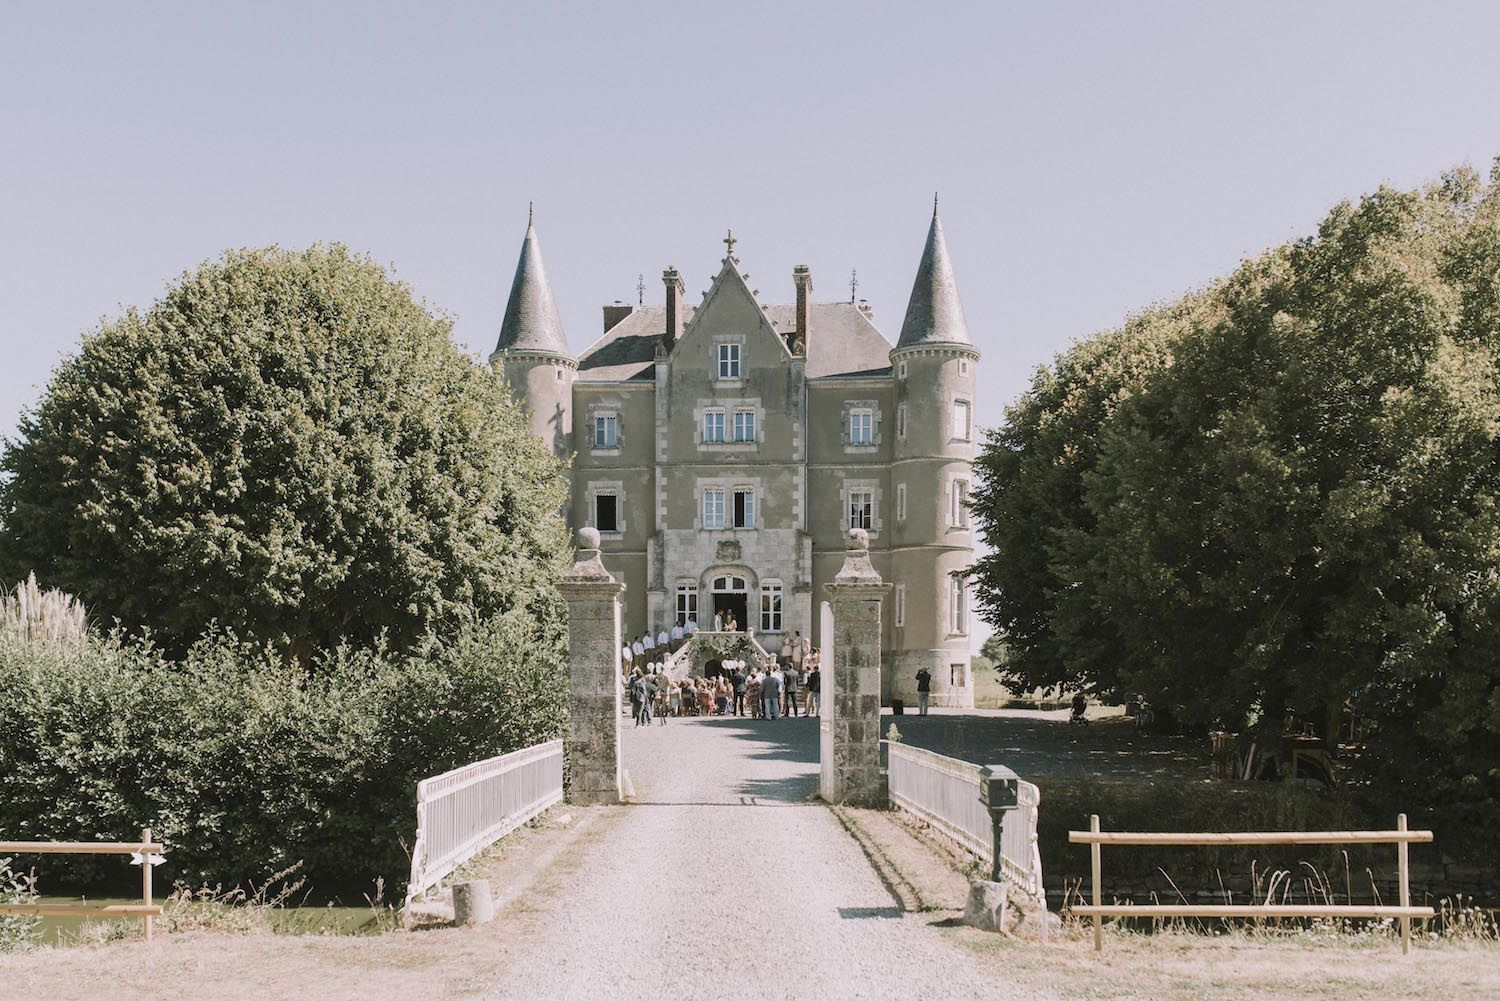 Escape to the Chateau Vintage Wedding in the Chateau de